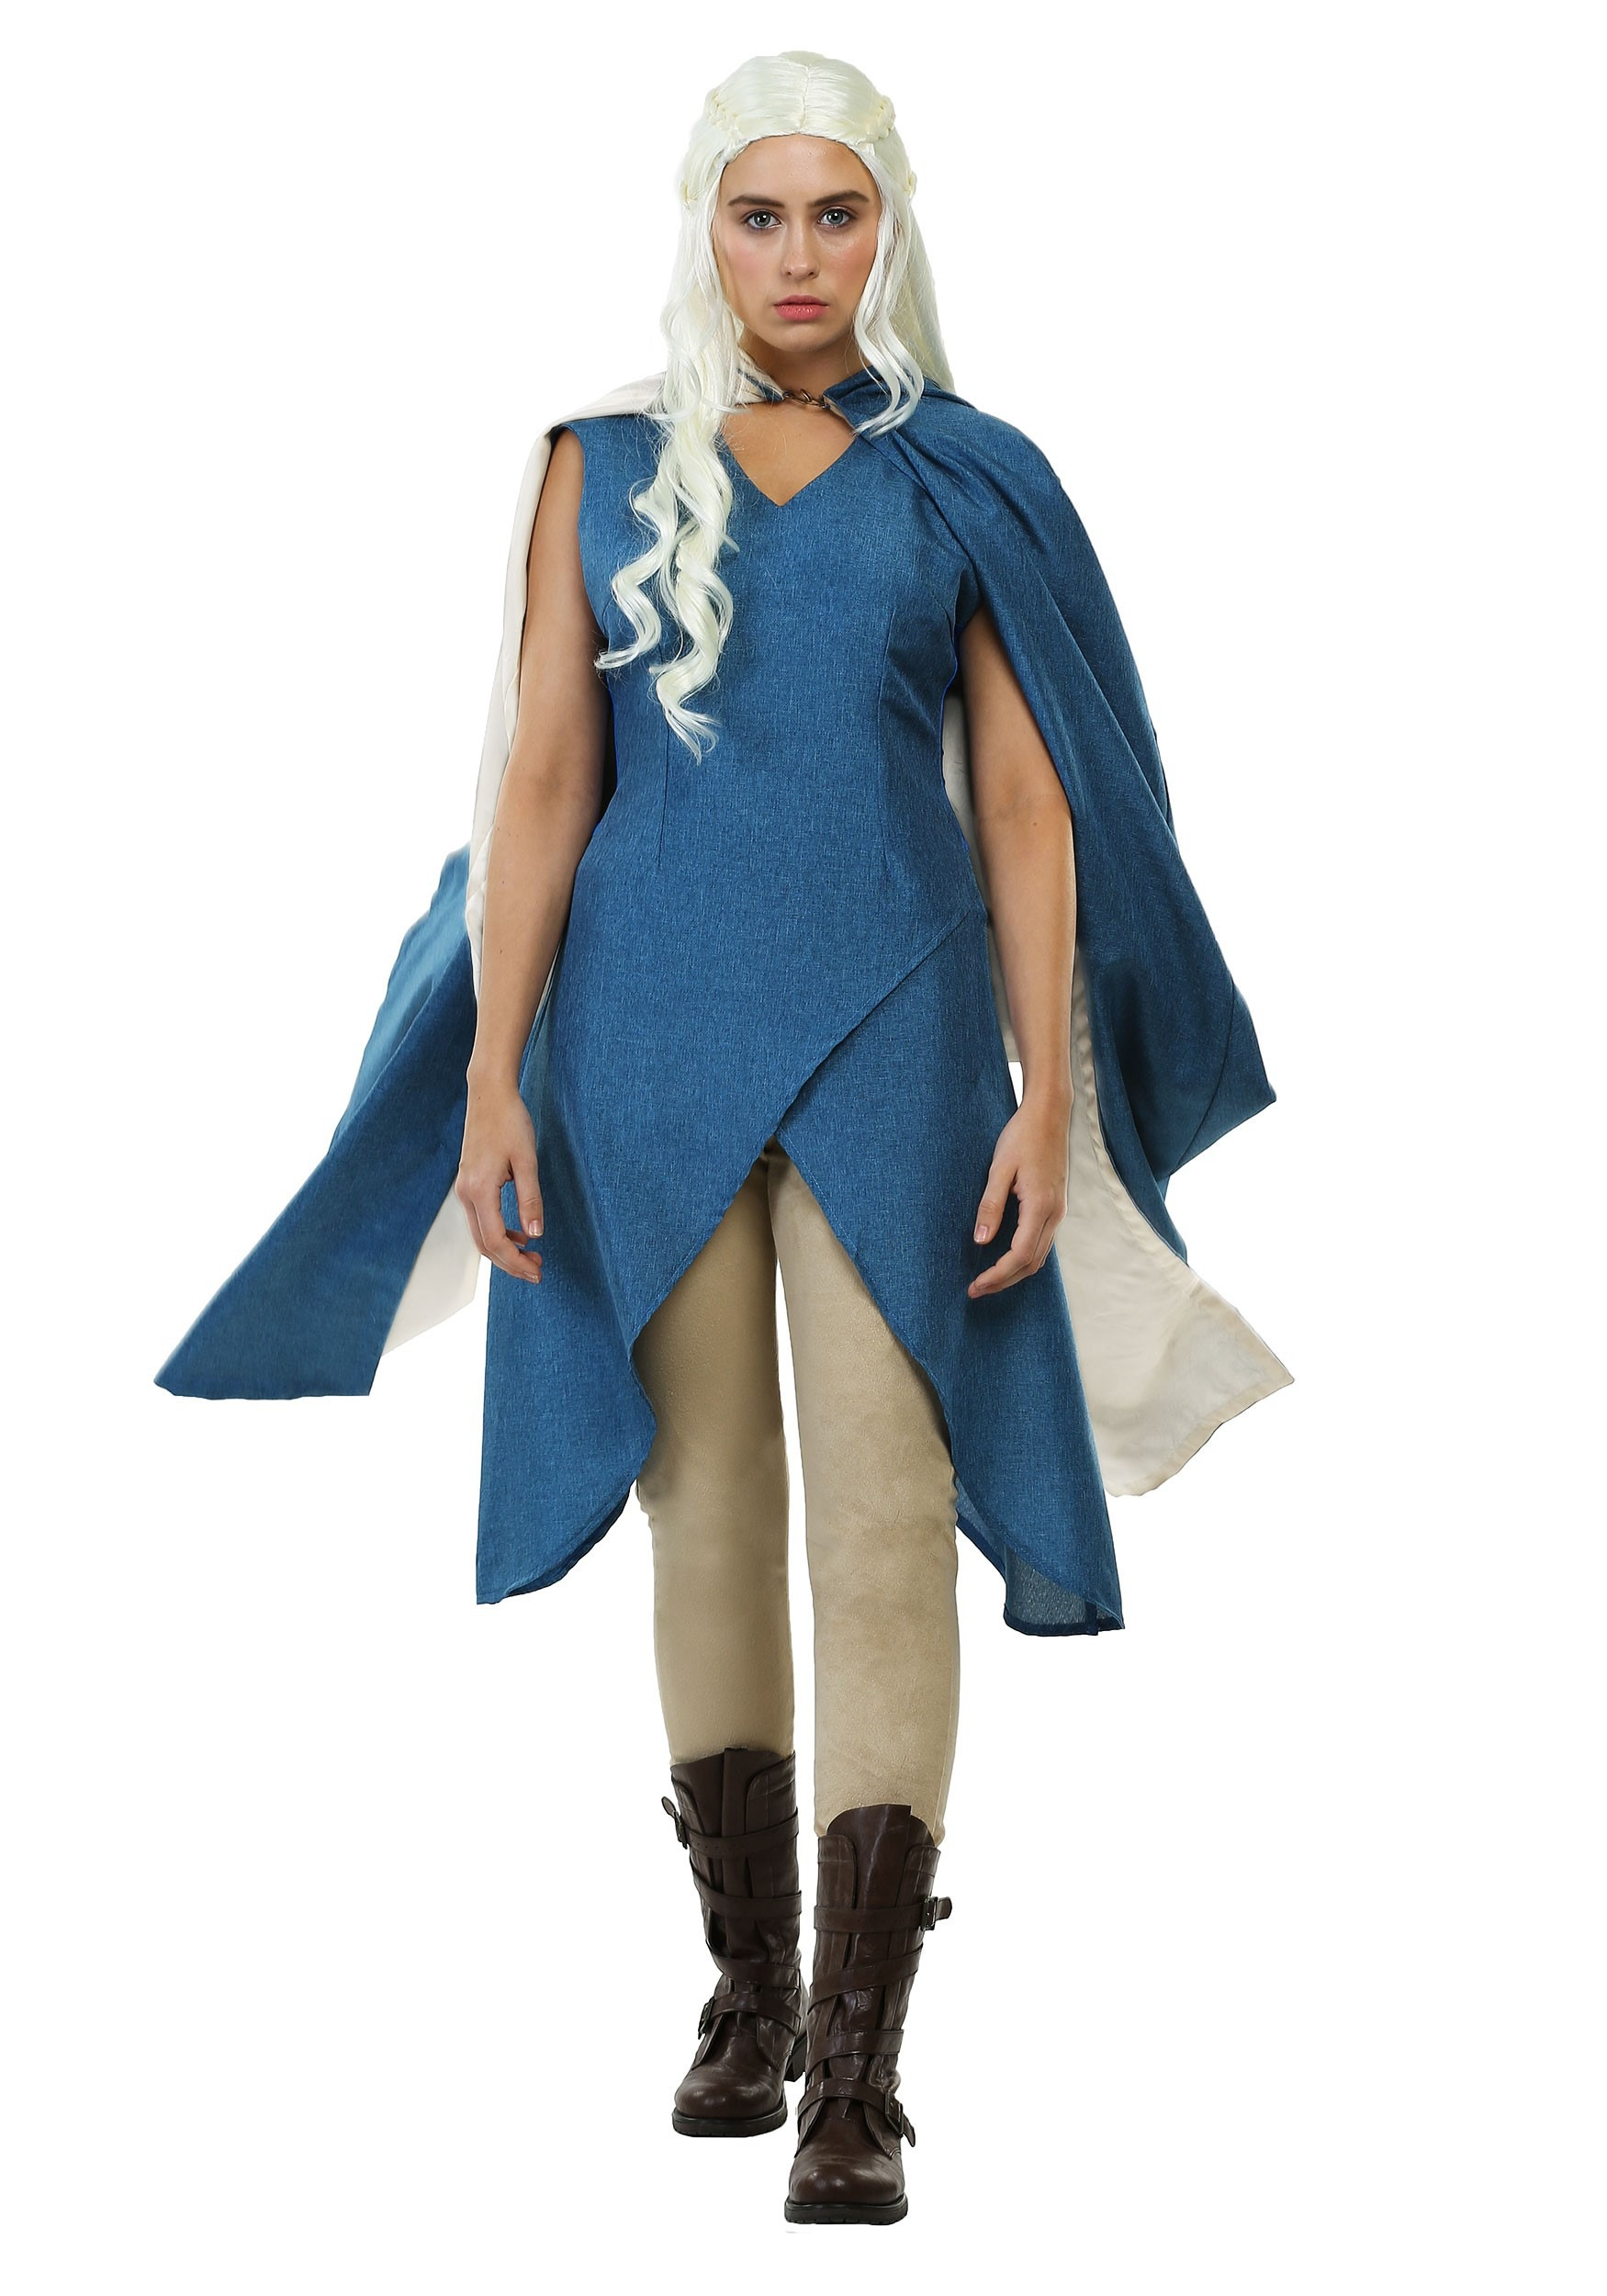 Costume Daenerys Targaryen - Game of Thrones